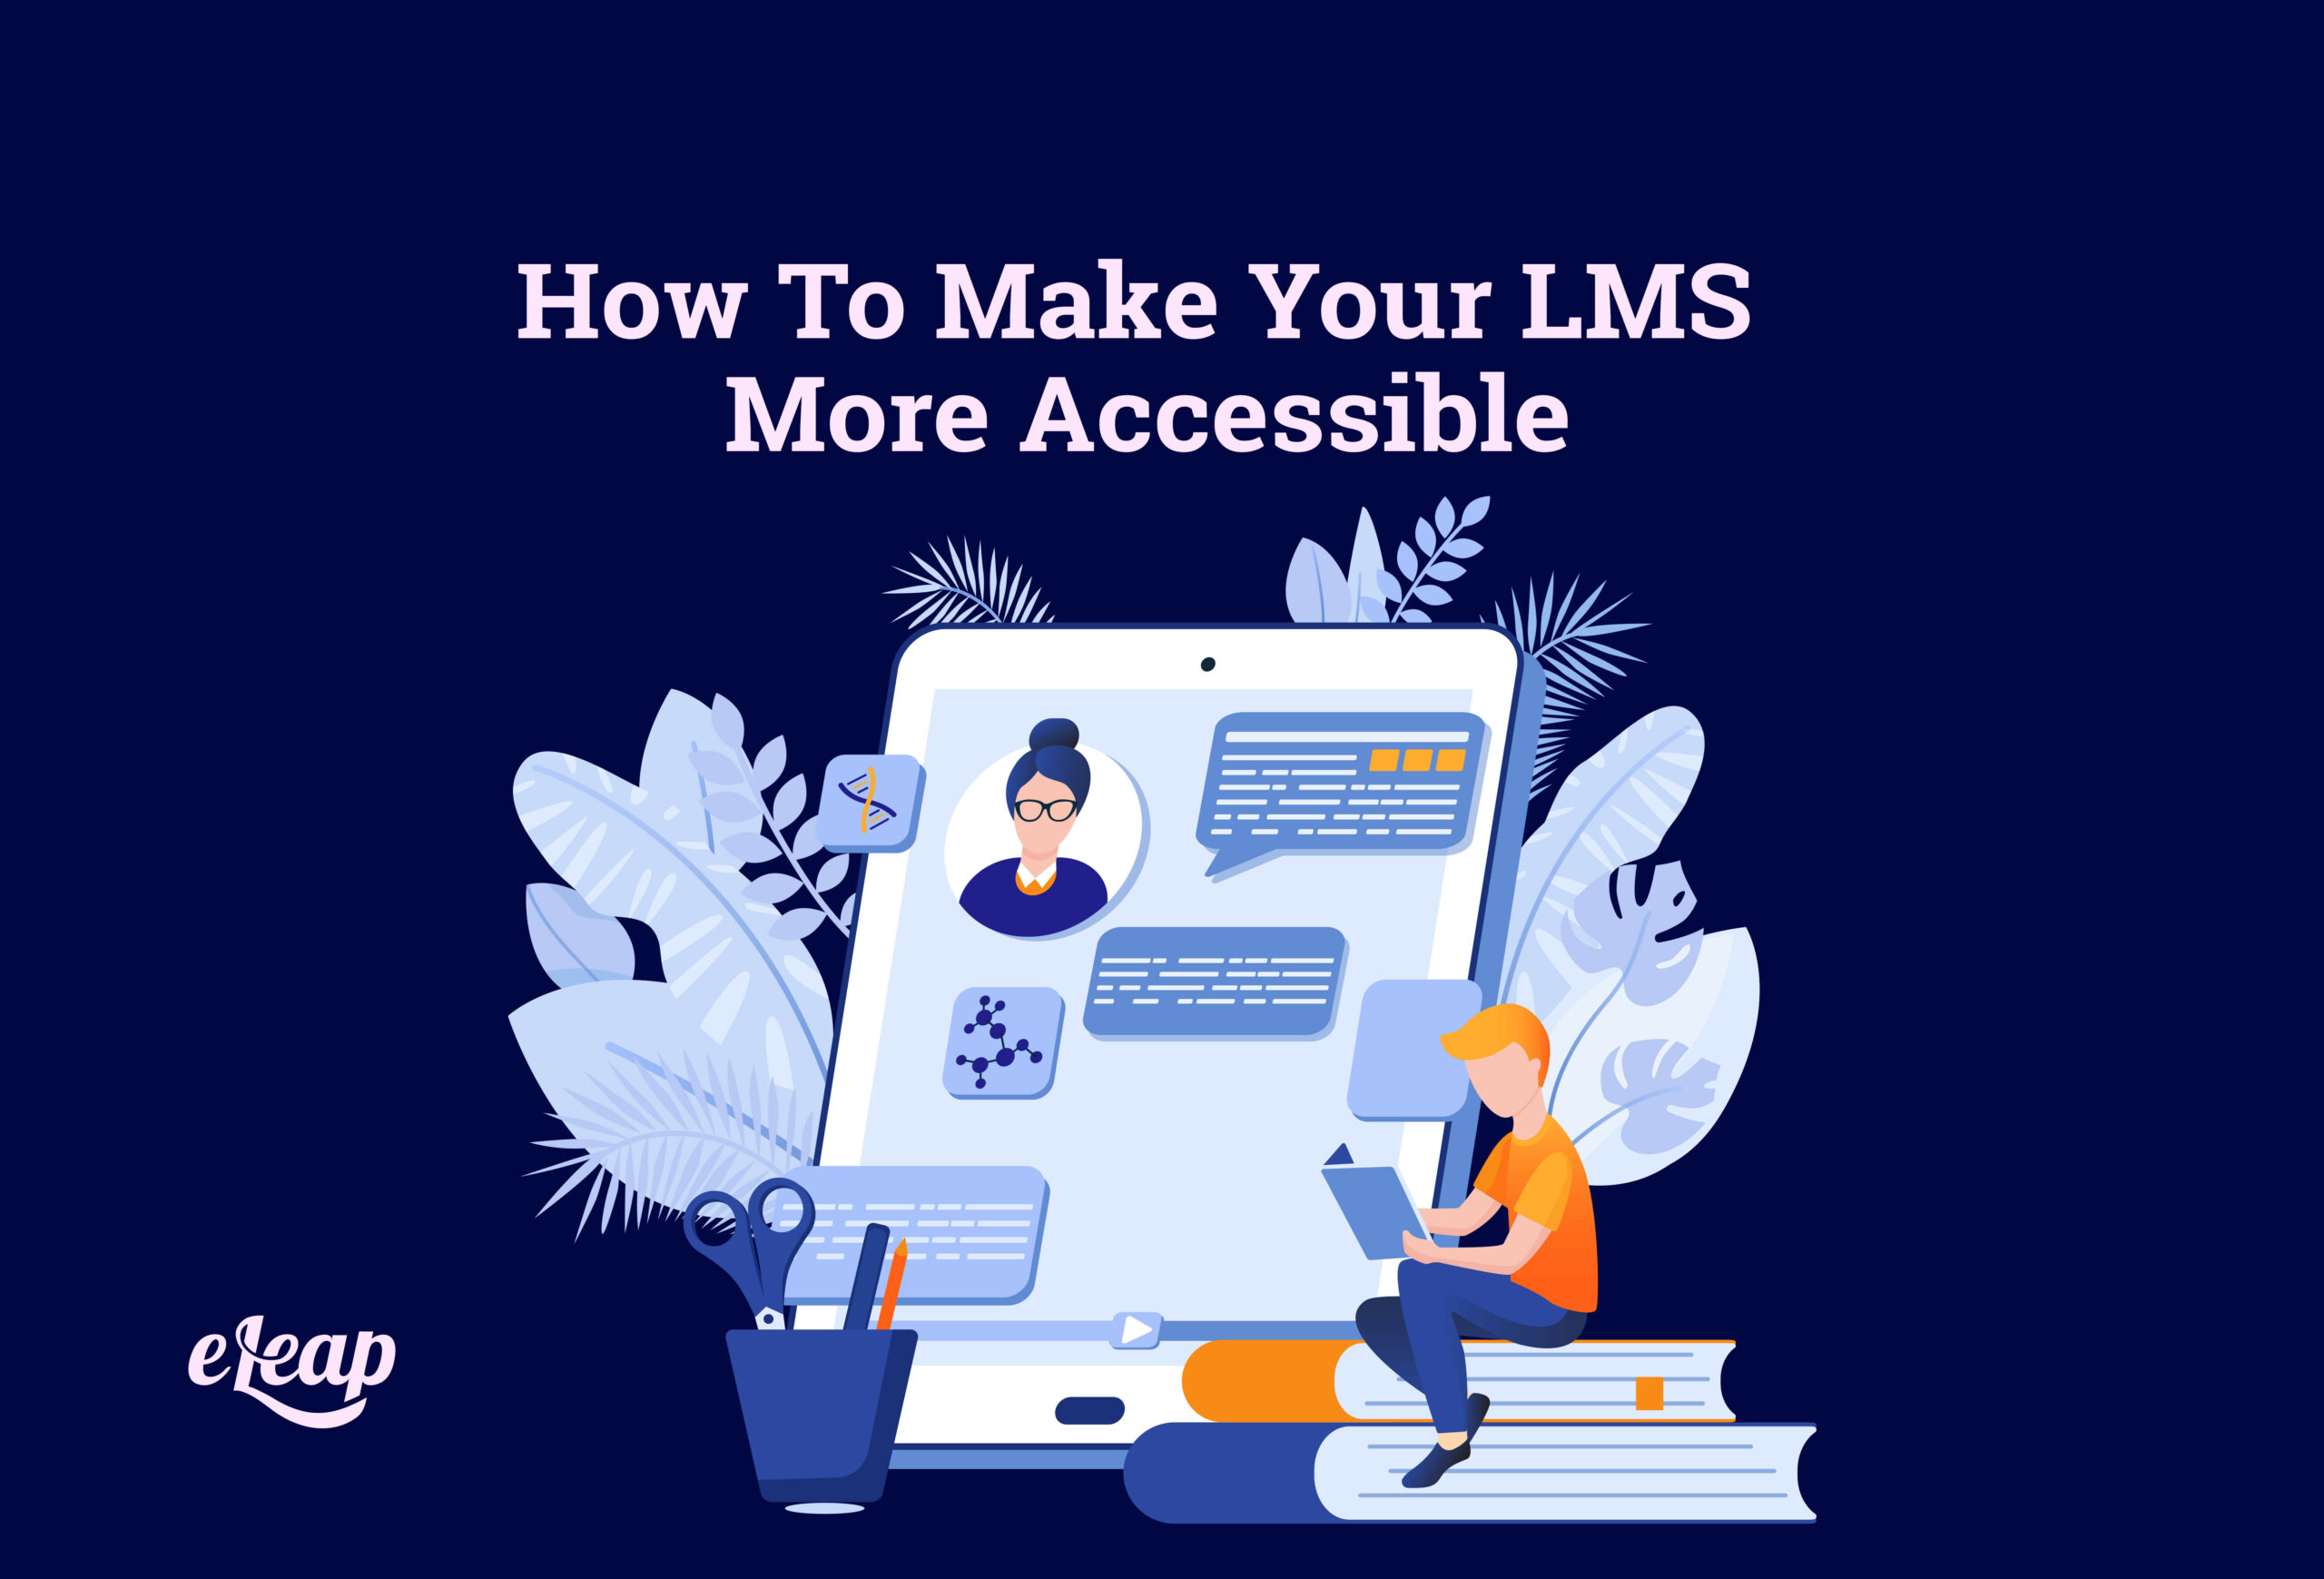 How To Make Your LMS More Accessible